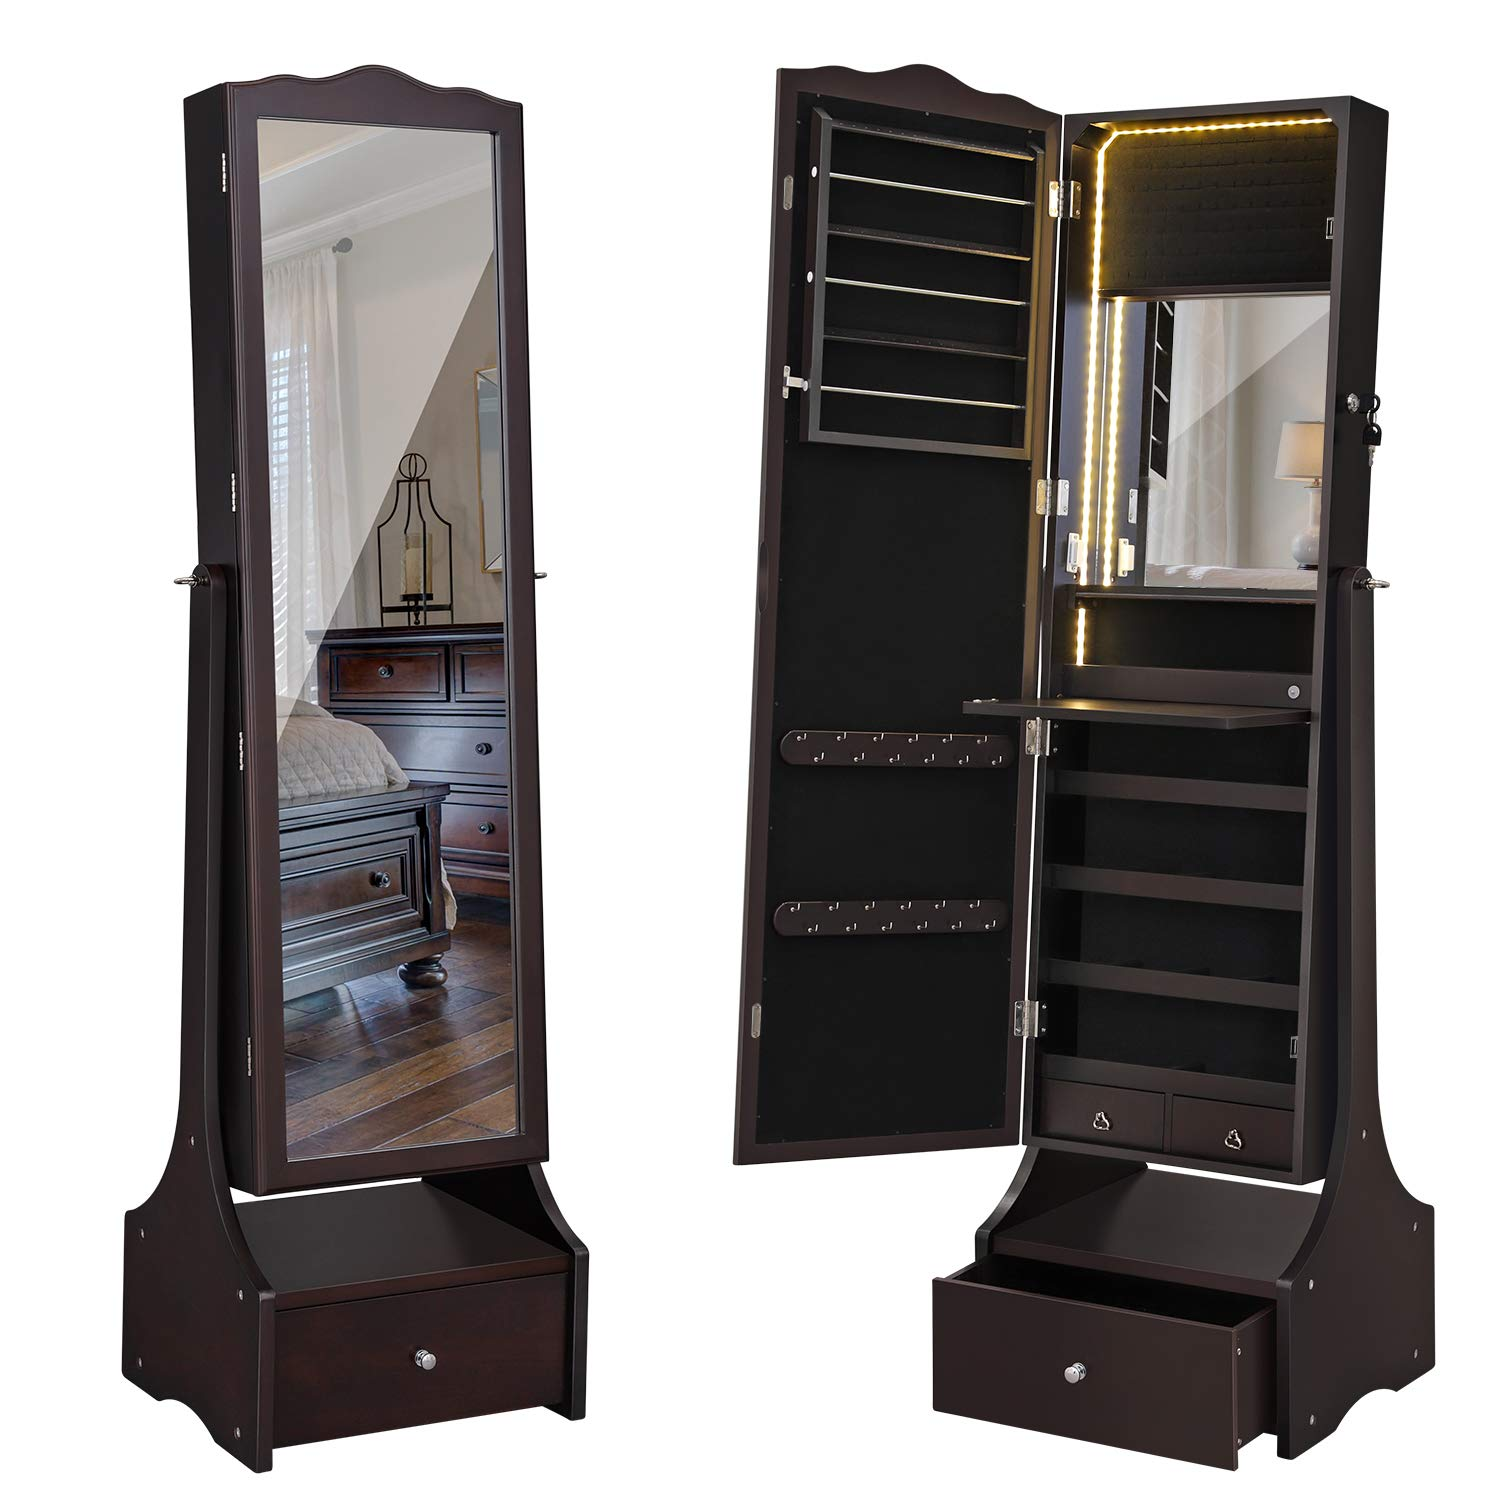 SONGMICS LED Jewelry Cabinet Lockable Jewelry Armoire with Full Length Mirror, Makeup Tray and Large Drawer Base Brown Patented Mother's Day Gift UJJC87BR by SONGMICS (Image #1)